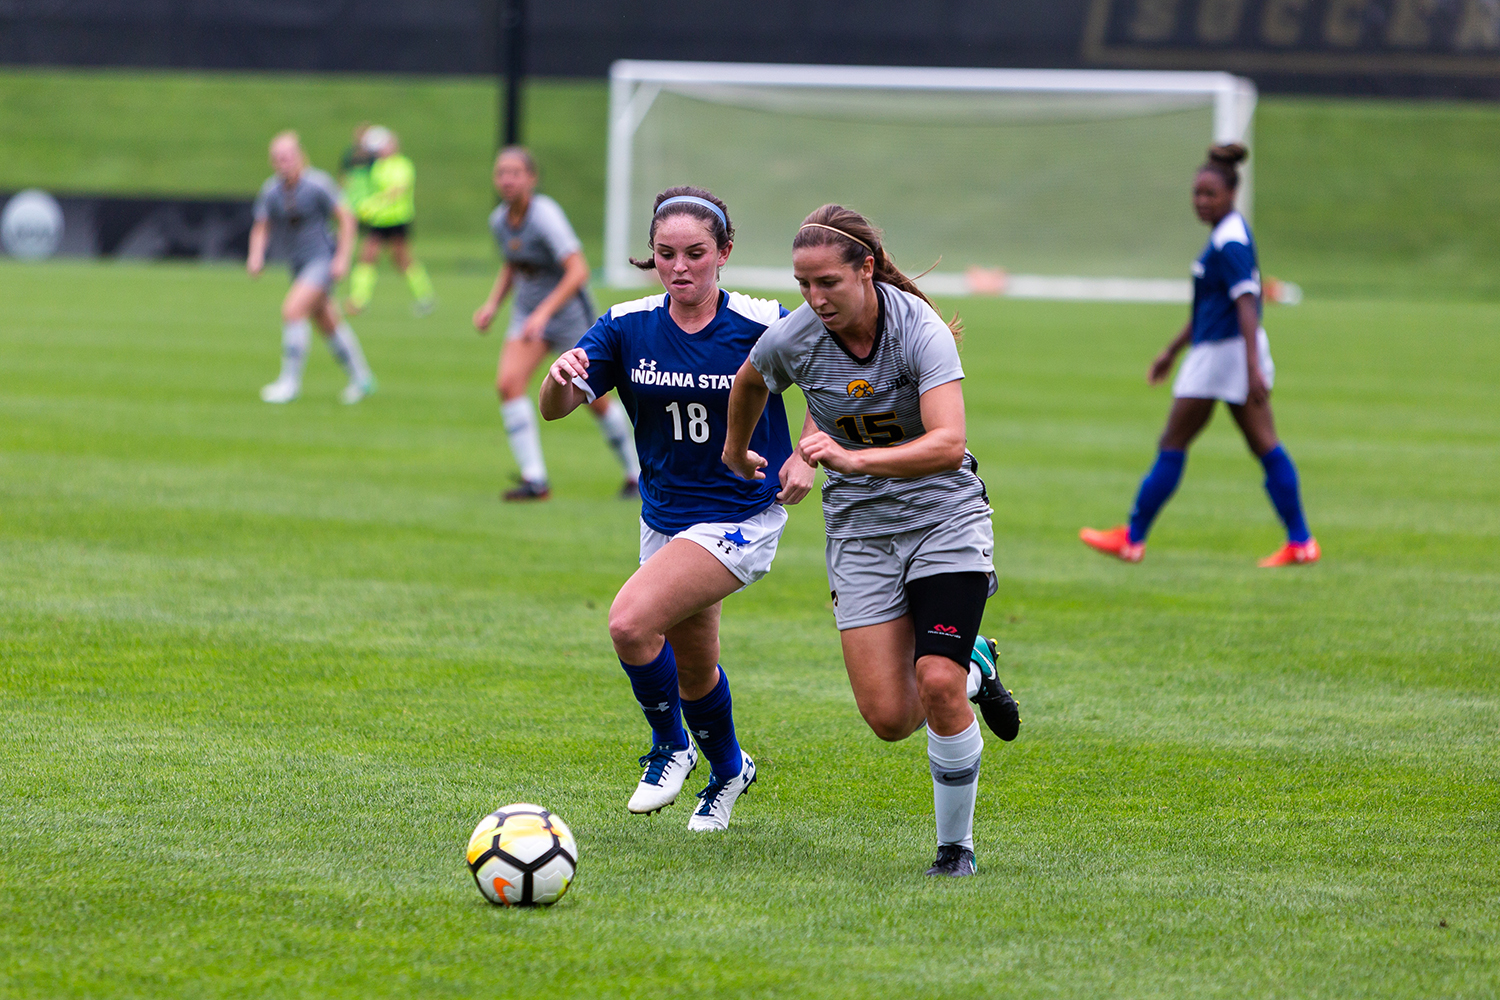 University of Iowa soccer player Rose Ripslinger chases the ball down during a game against Indiana State University on Sunday, Aug. 26, 2018. Ripslinger had the only goal of the game and the Hawkeyes defeated the Sycamores 1-0.